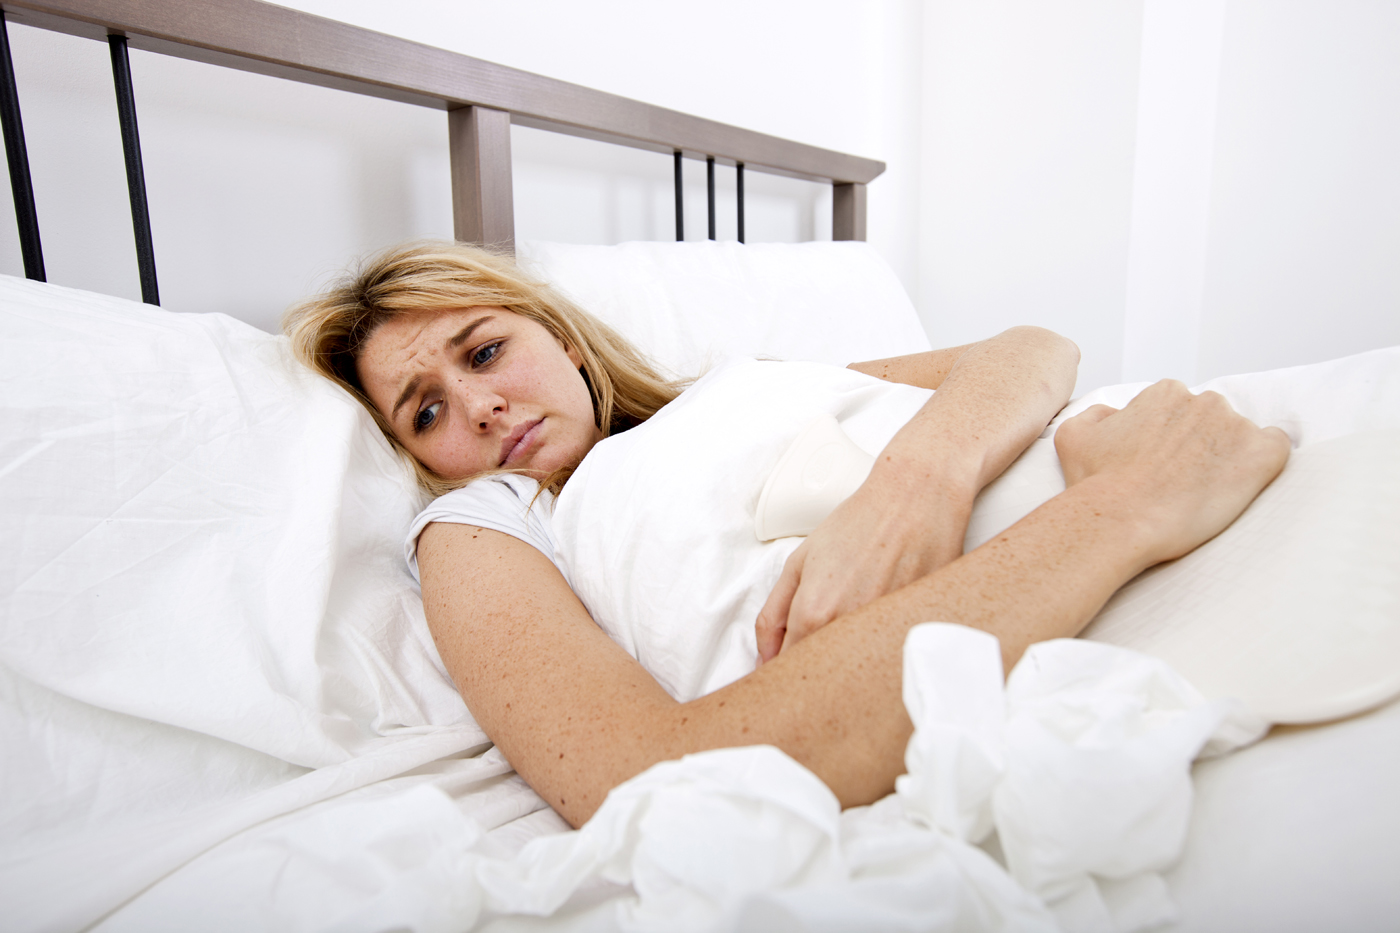 Woman-suffering-from-abdomen-pain-in-bed.jpg